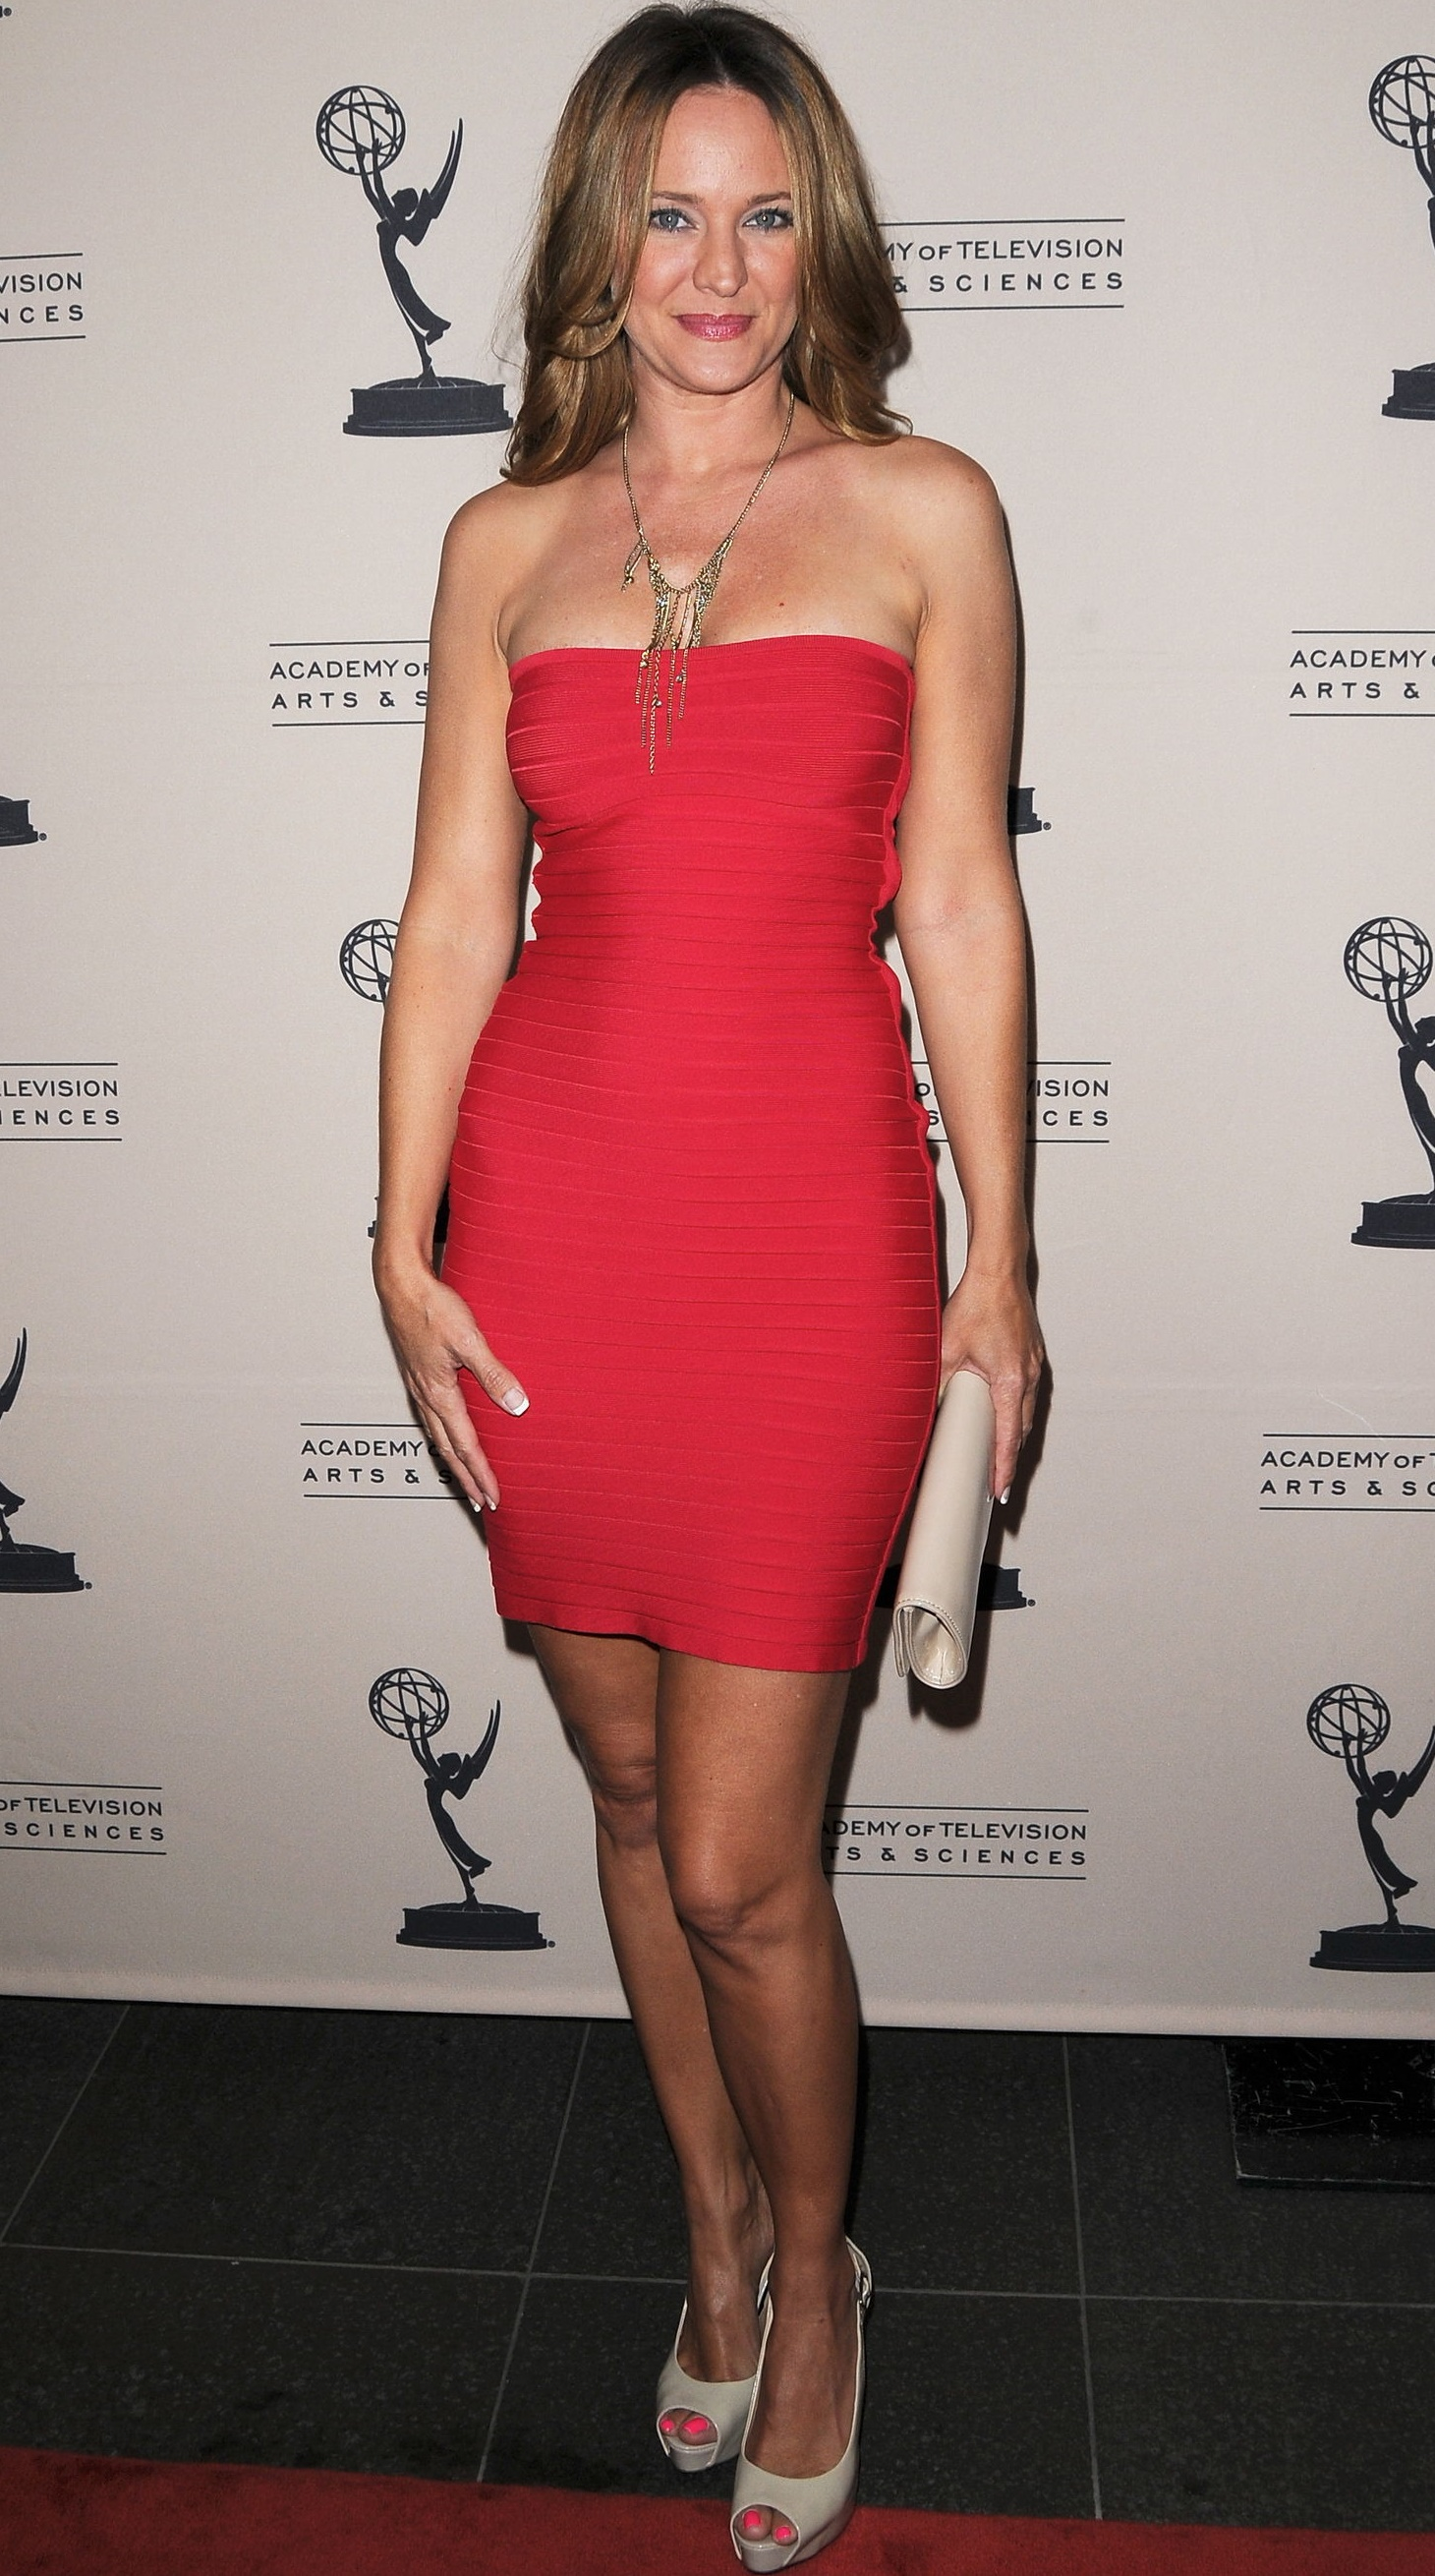 Sharon Case Television Academy's Daytime Programing Peer Group Reception for the 2011 Daytime Emmy Awards Nominees